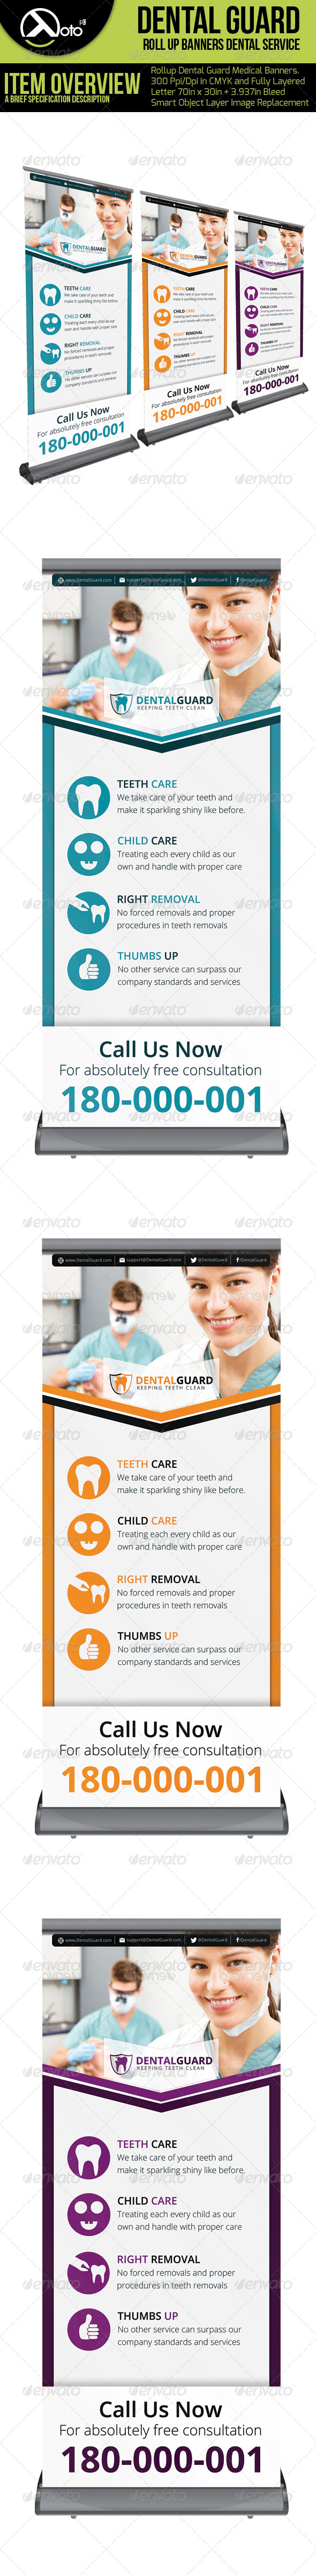 Dental Guard Medical Roll Up Banners - Signage Print Templates